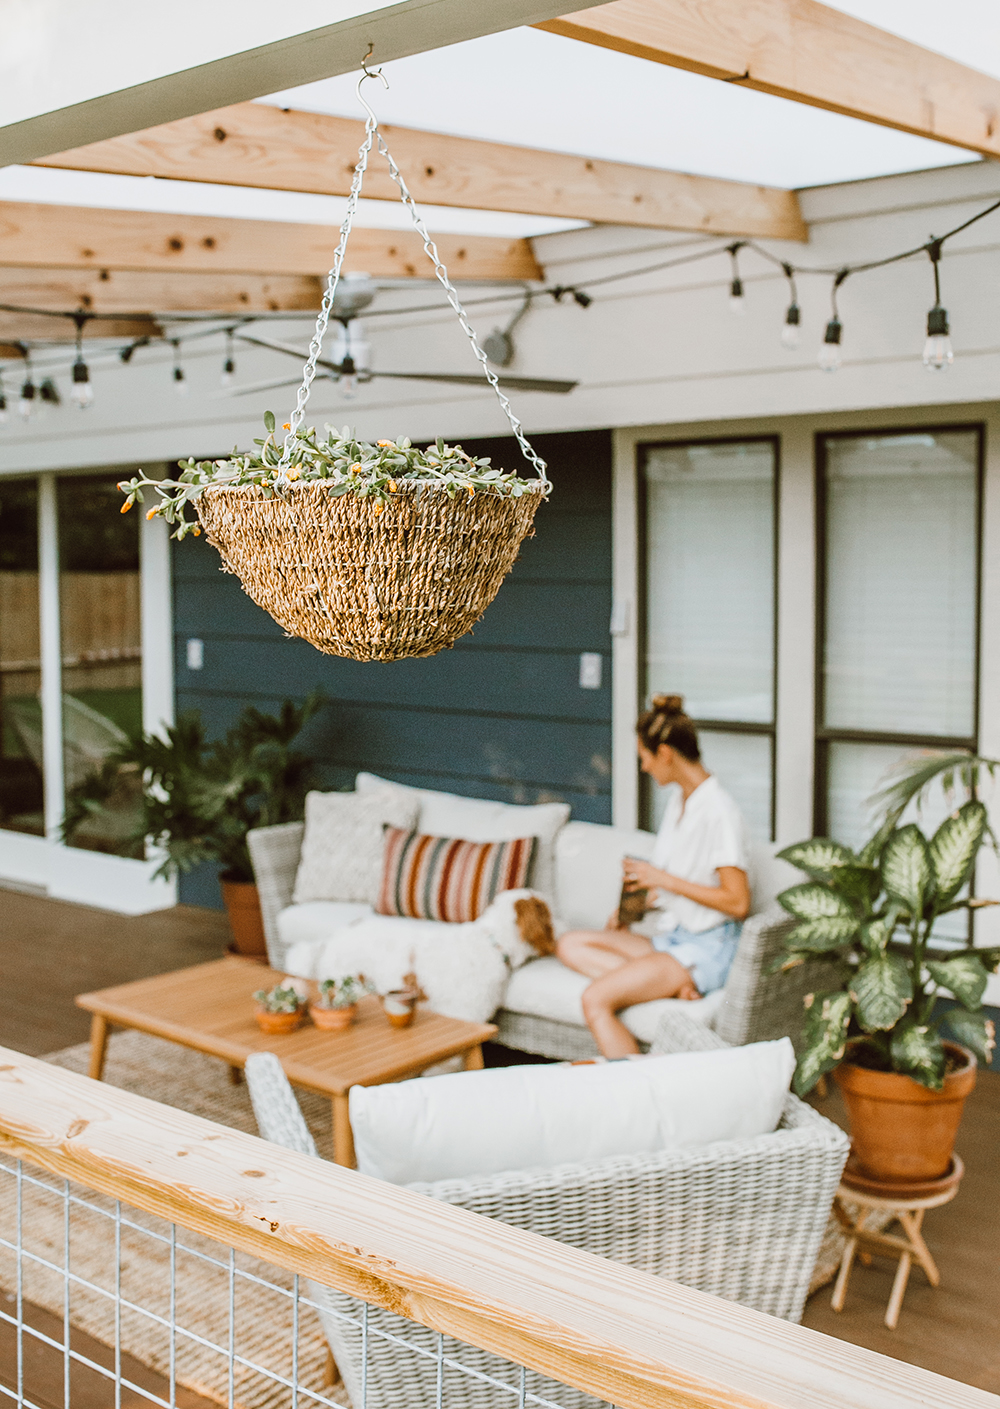 livvyland-blog-olivia-watson-before-after-outside-patio-renovation-reveal-furniture-austin-texas-lifestyle-blogger-5